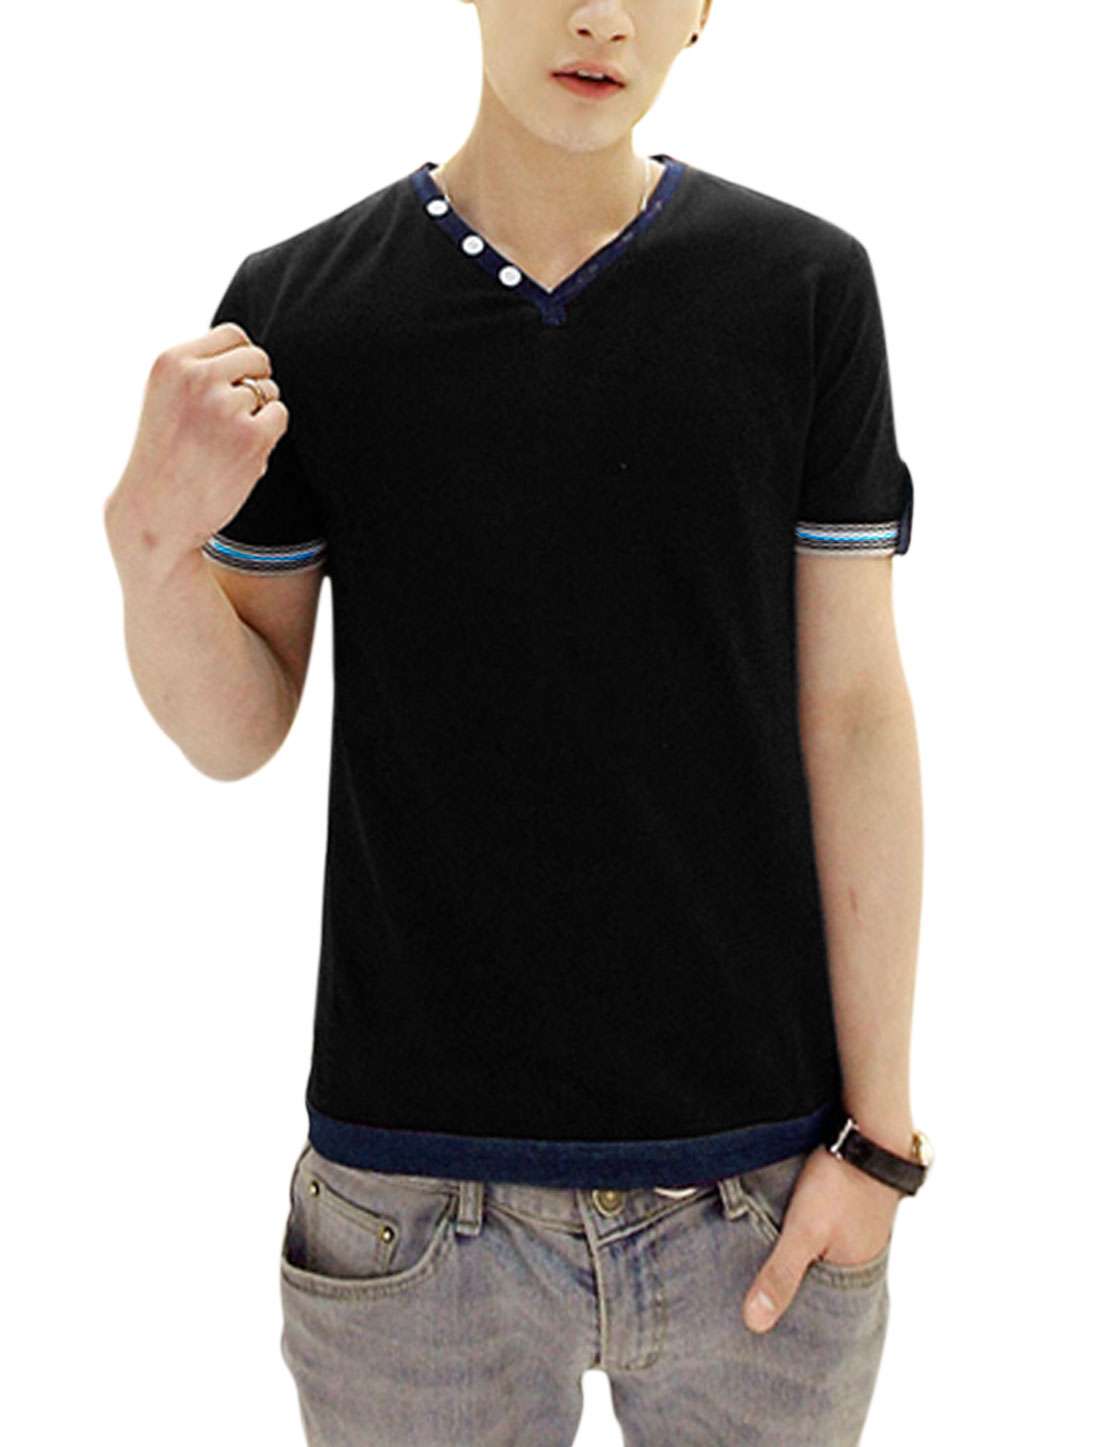 Men Stylish Buttons Decor Button-tab Cuffs Casual Tee Shirt Black S